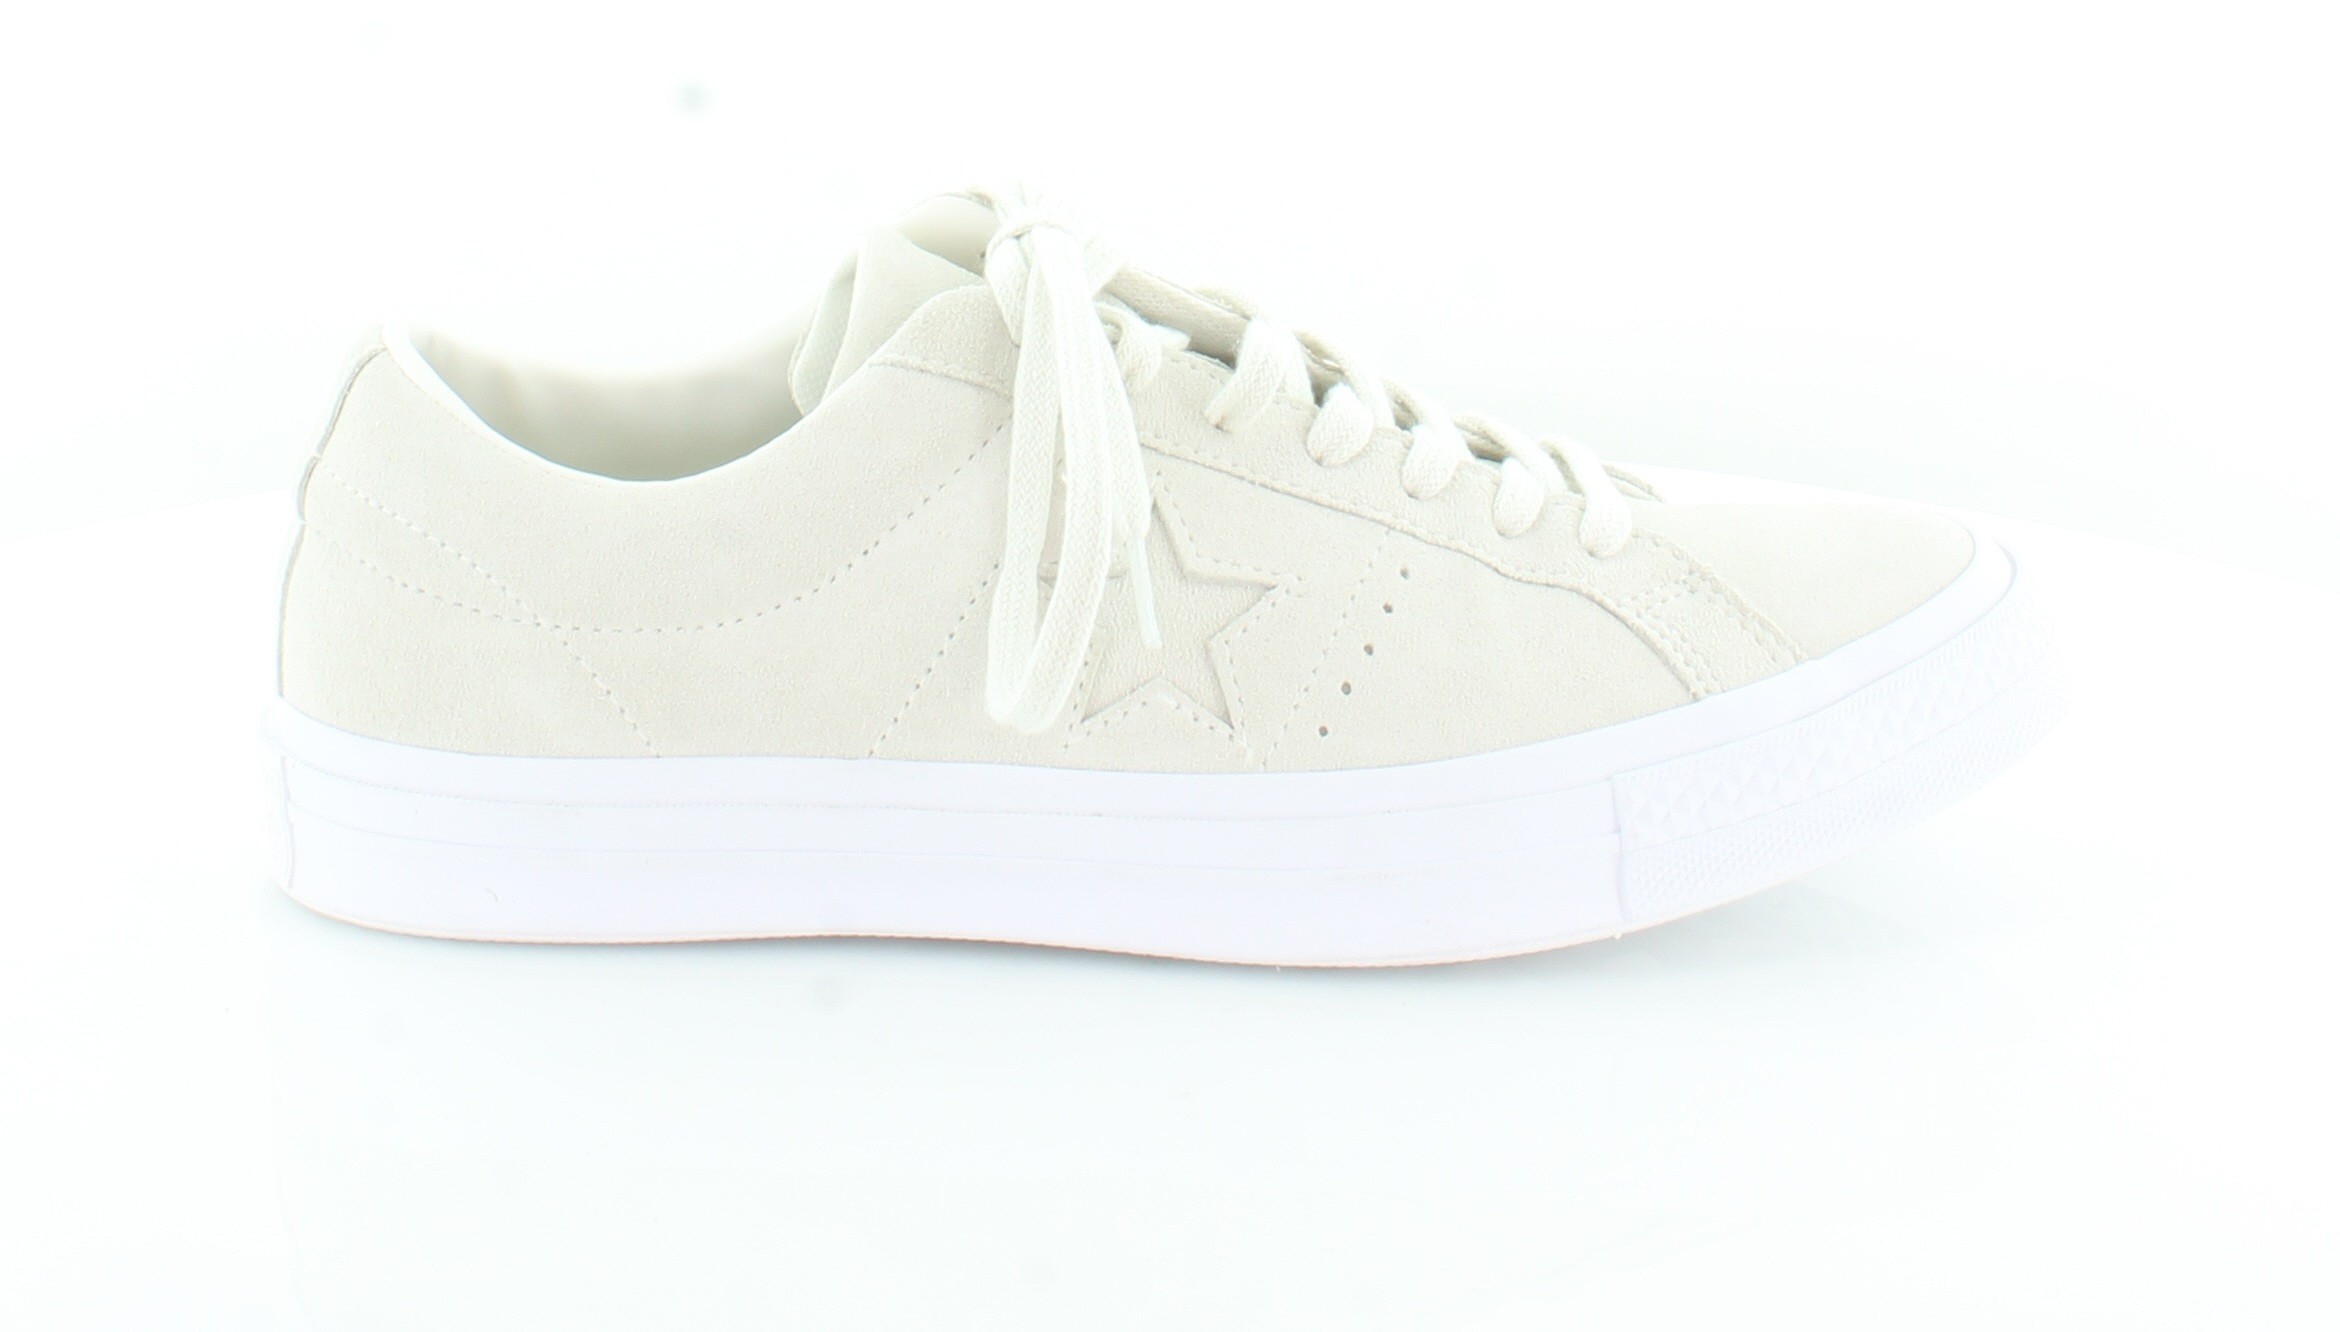 Converse New One Star Beige Womens Shoes Size 11 M Fashion Sneakers ... 067c0a8b14